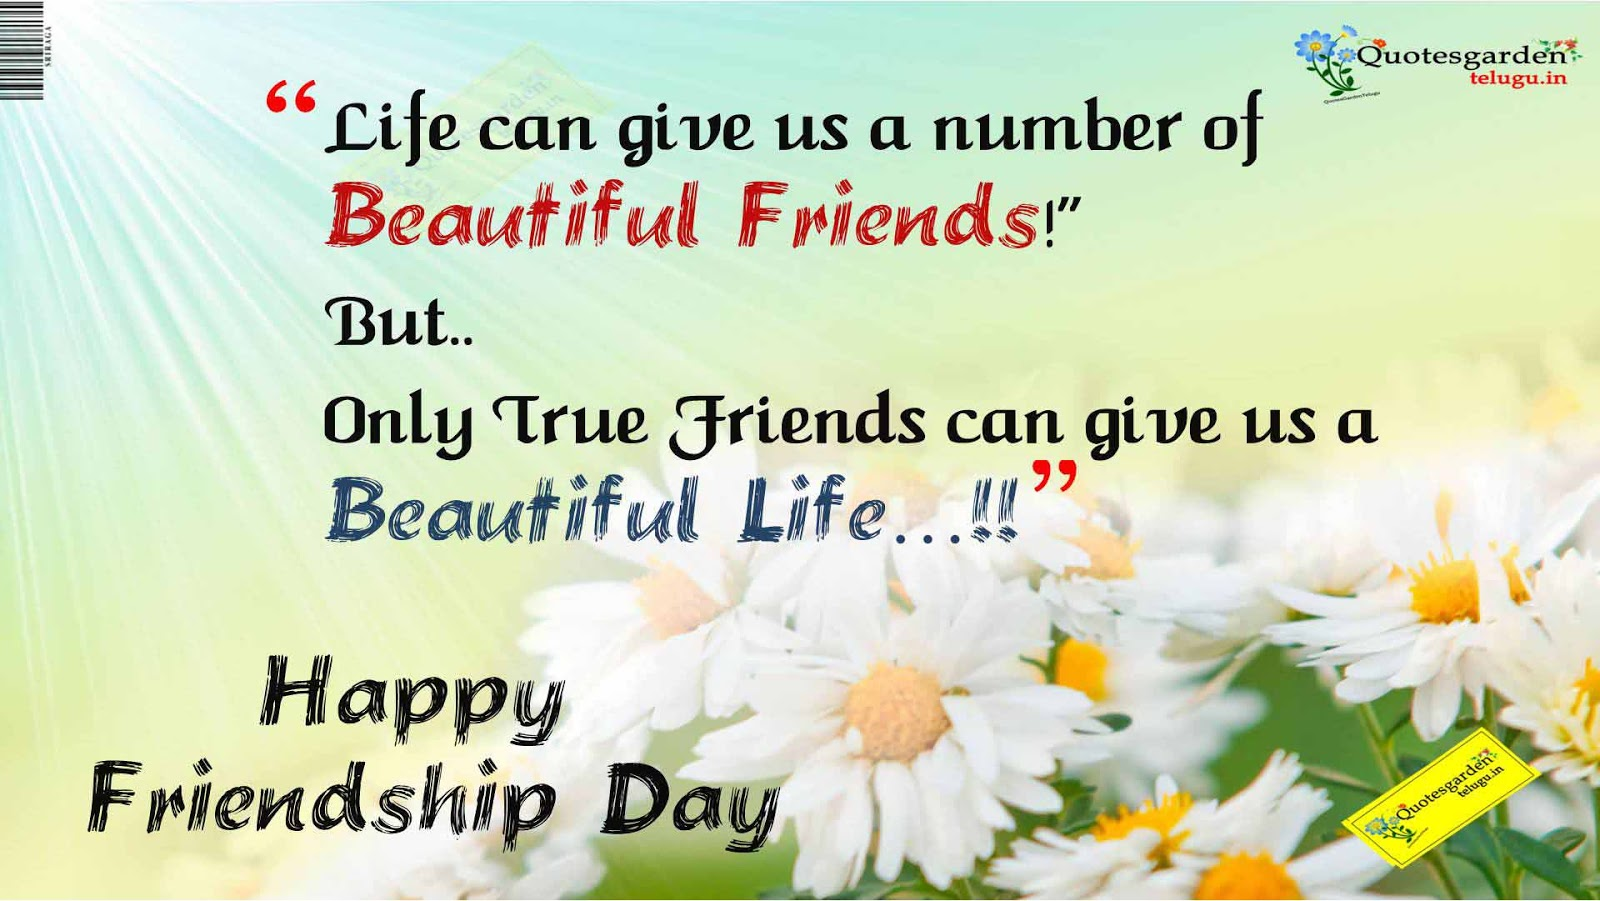 Best Friendship Day Quotes With Images In English : Best quotes for friendship day with hd wallpapers